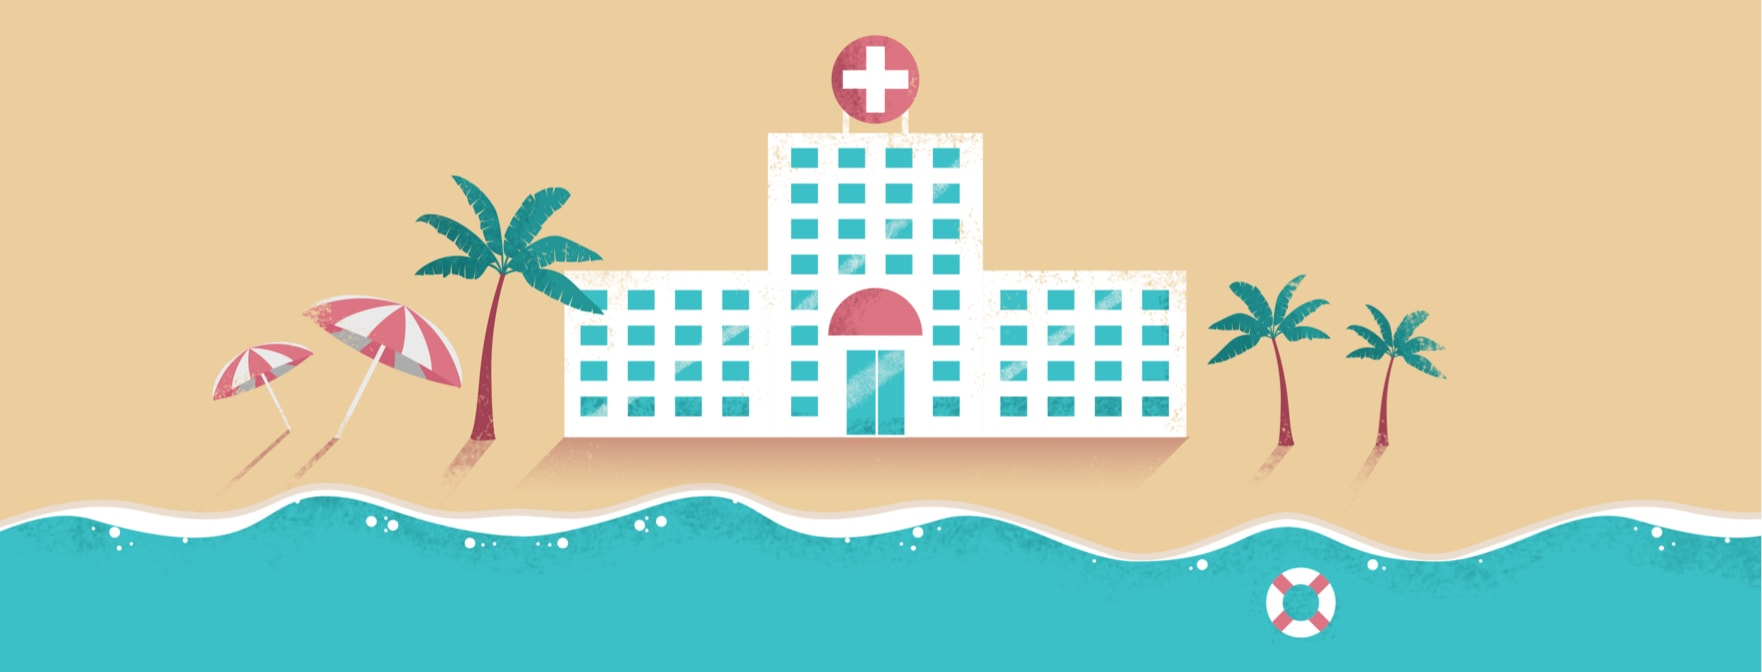 hospital on the beach